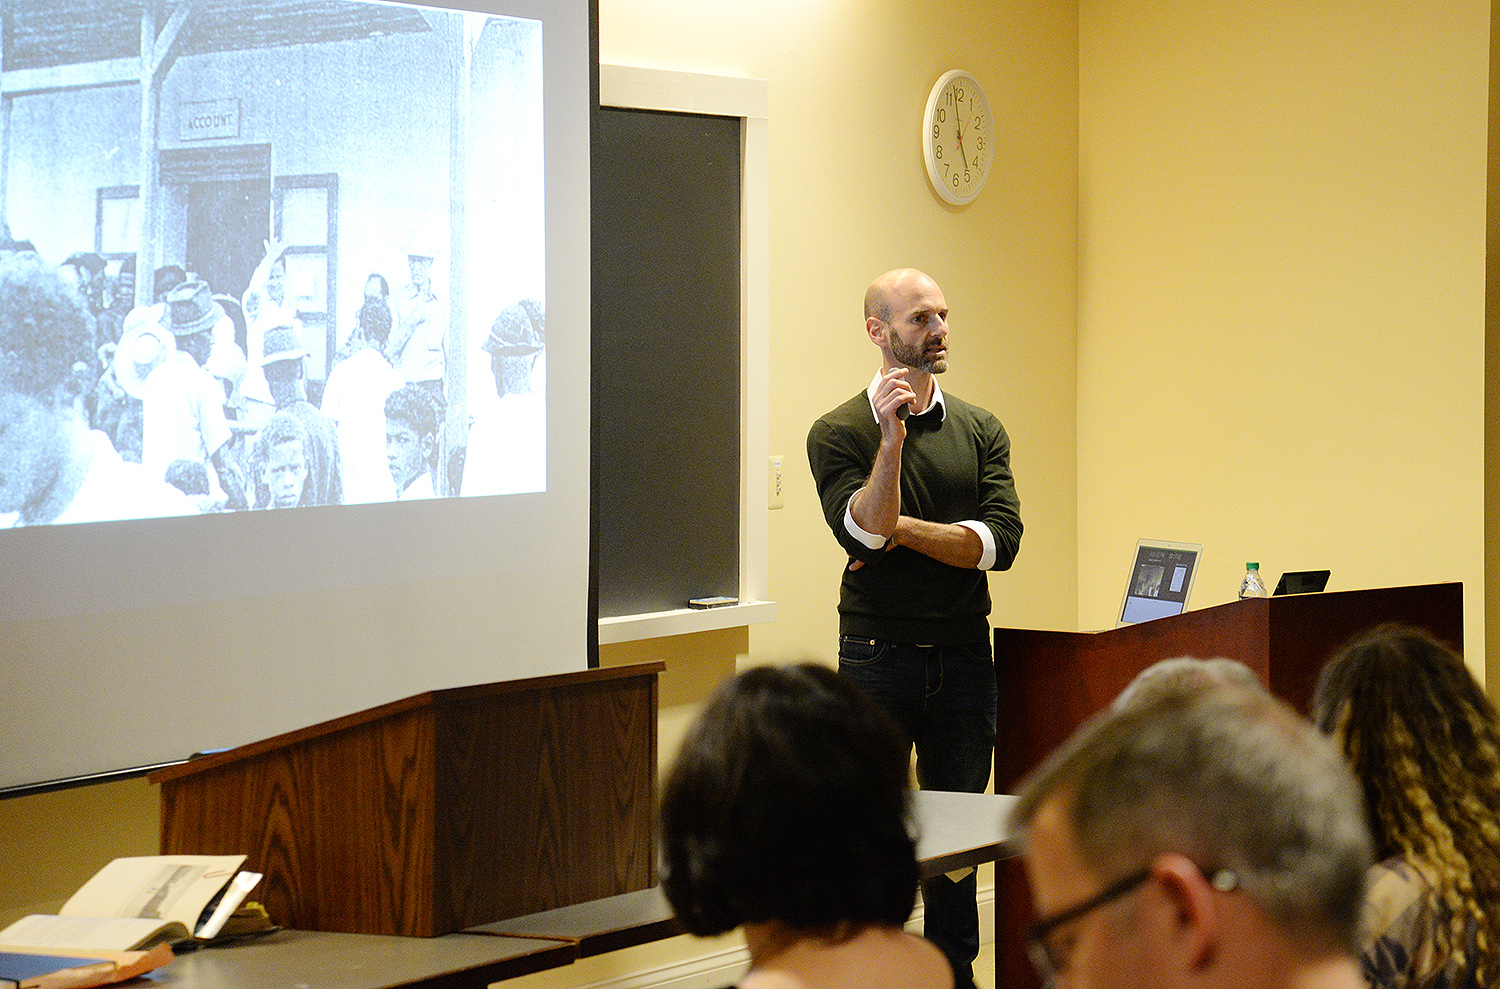 The event was co-sponsored by the Allbritton Center for the Study of Public Life and the Anthropology and Classical Studies Departments.